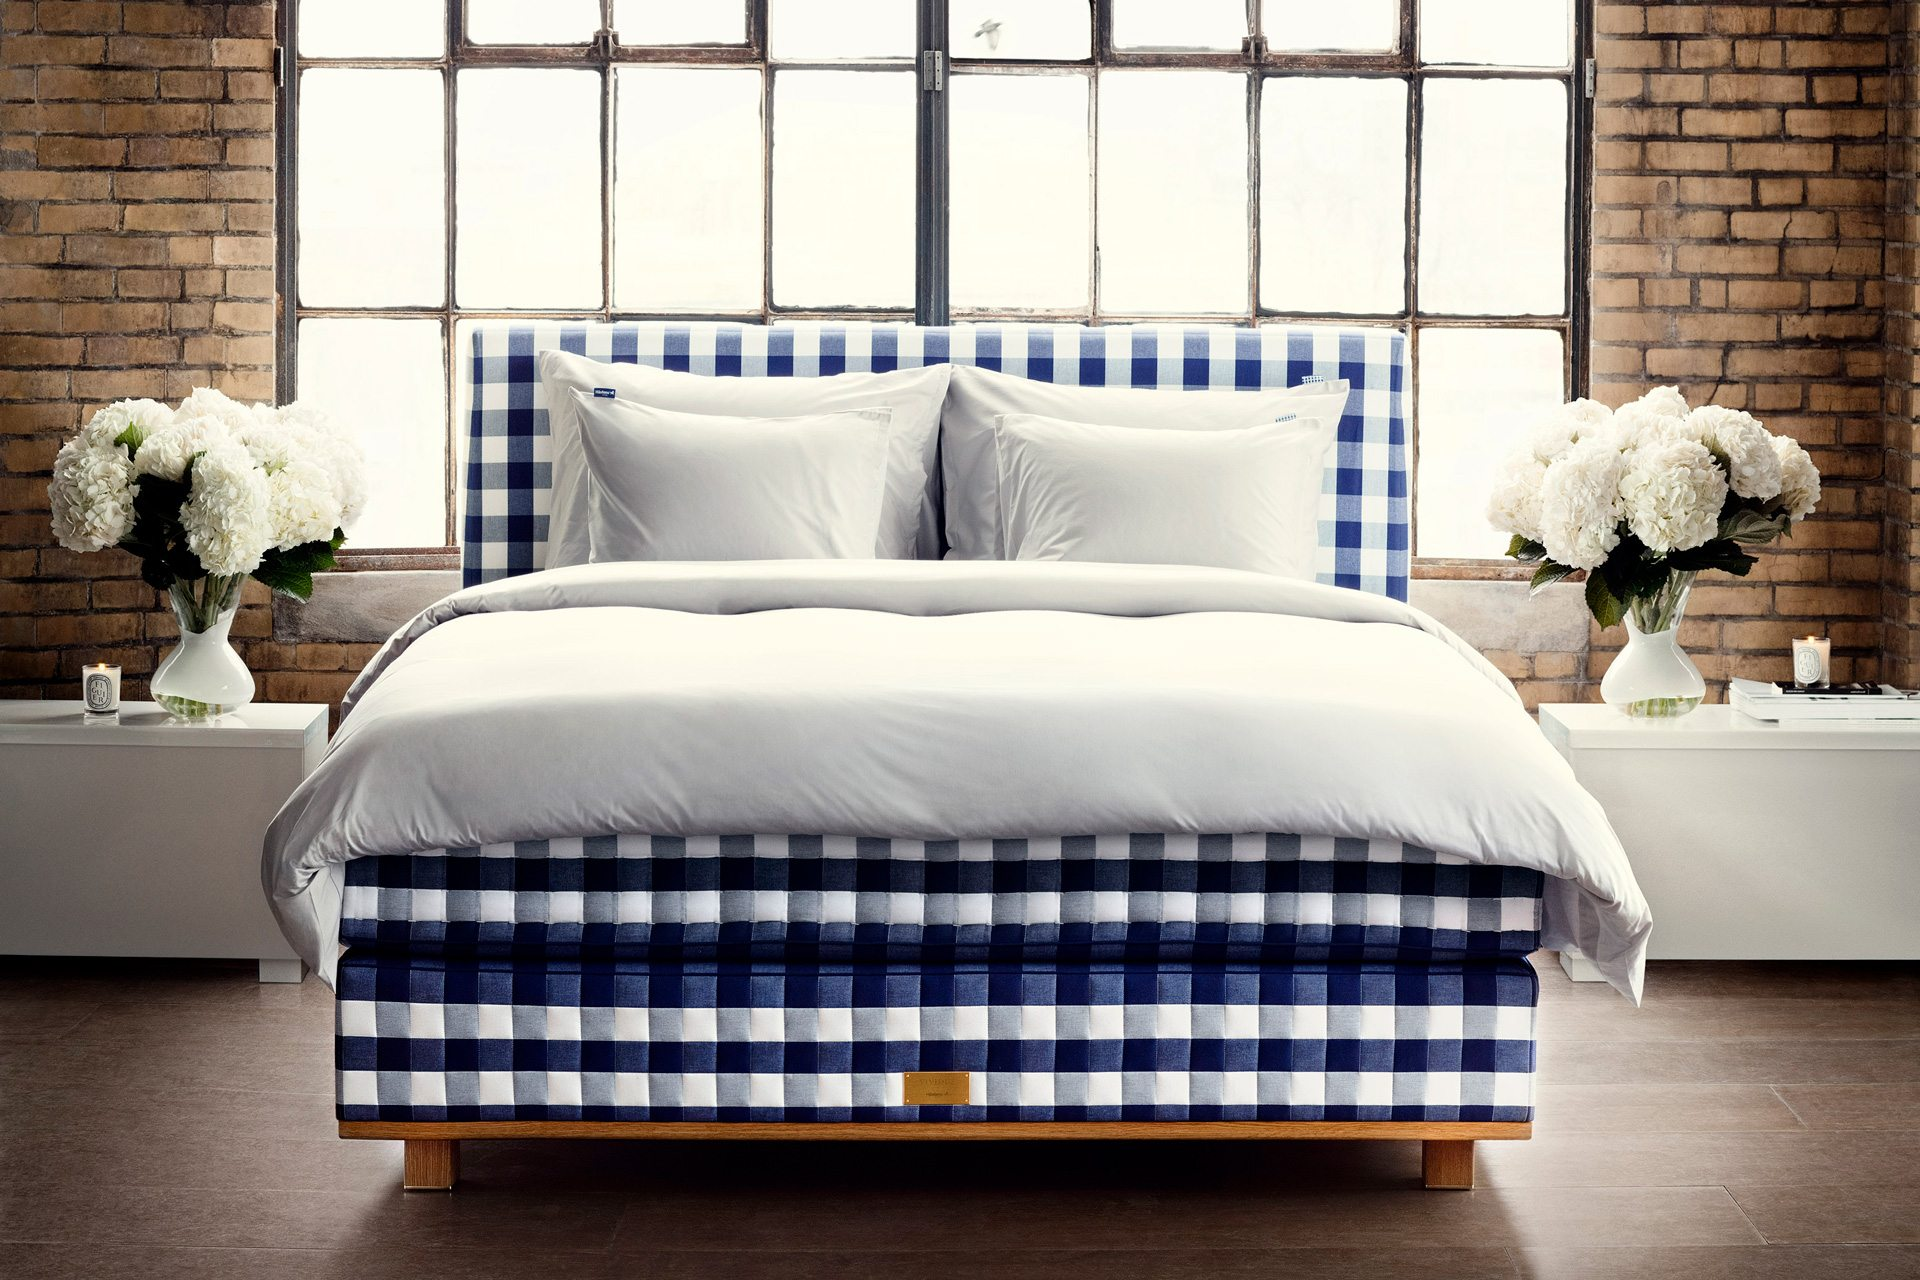 King Size Mattress Sale Uk The Most Luxurious Beds In The World Luxury Bed Guide 2019